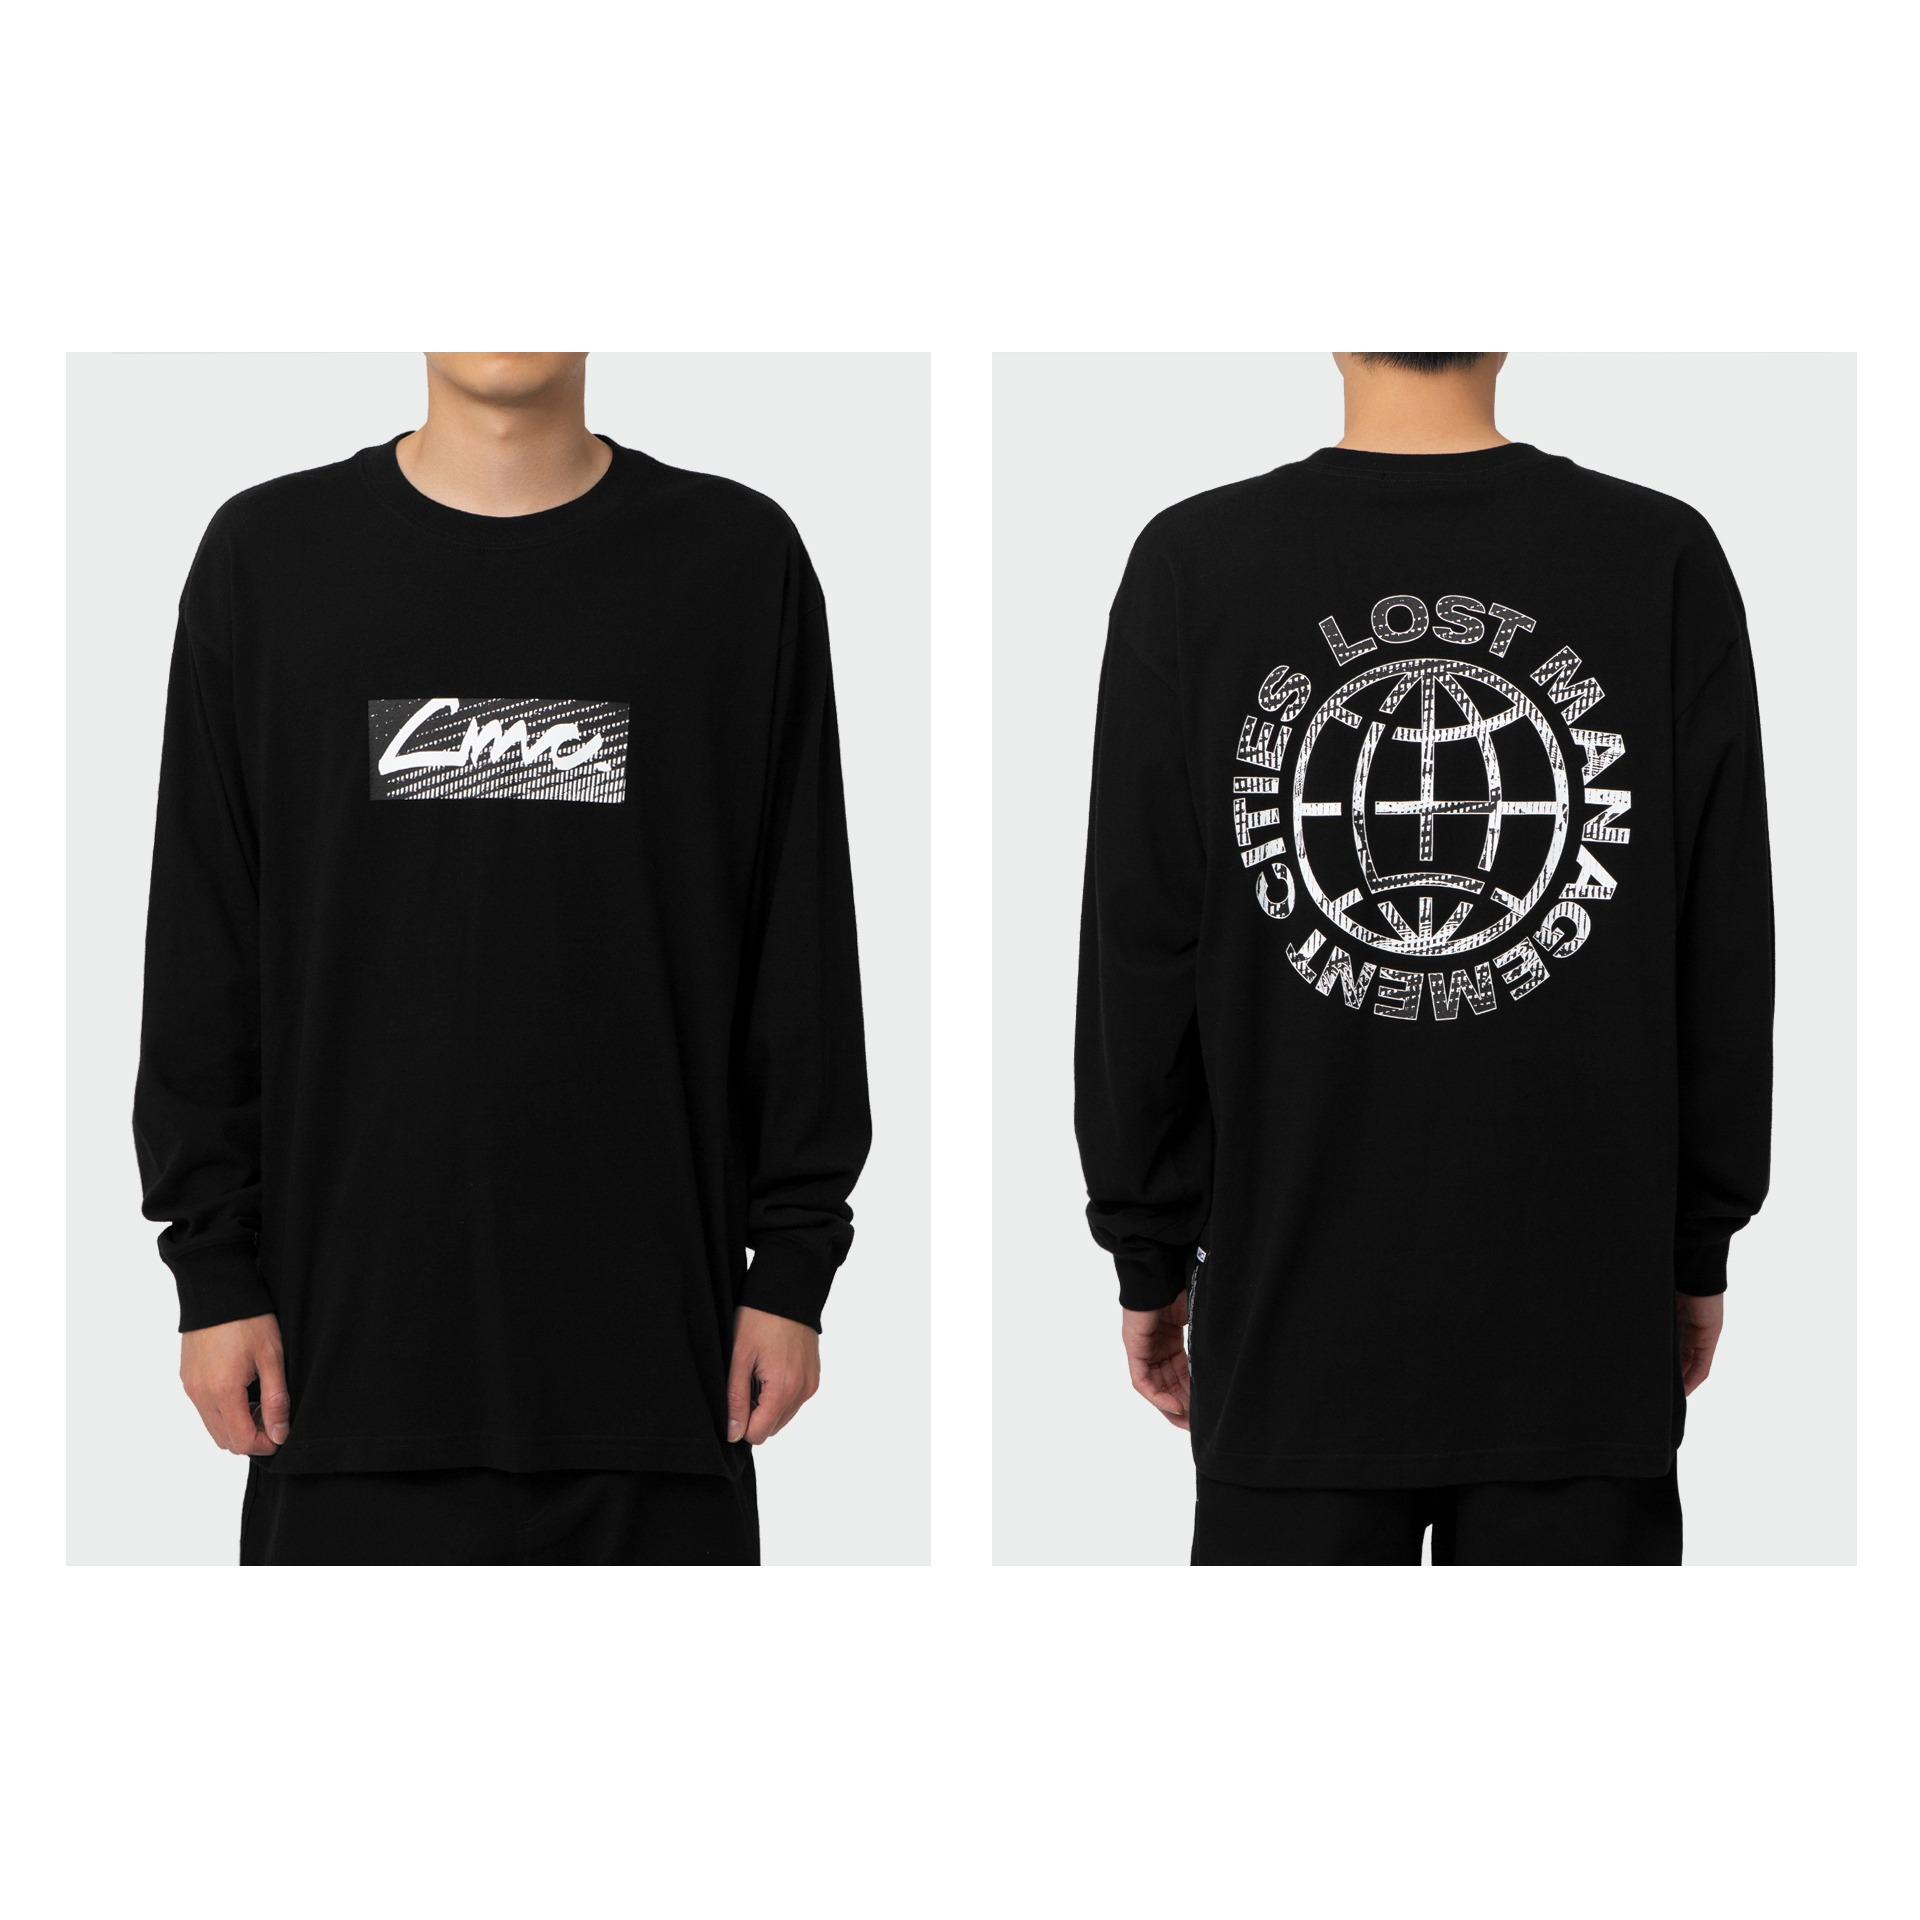 LMC D-NOISE LONG SLV TEE black